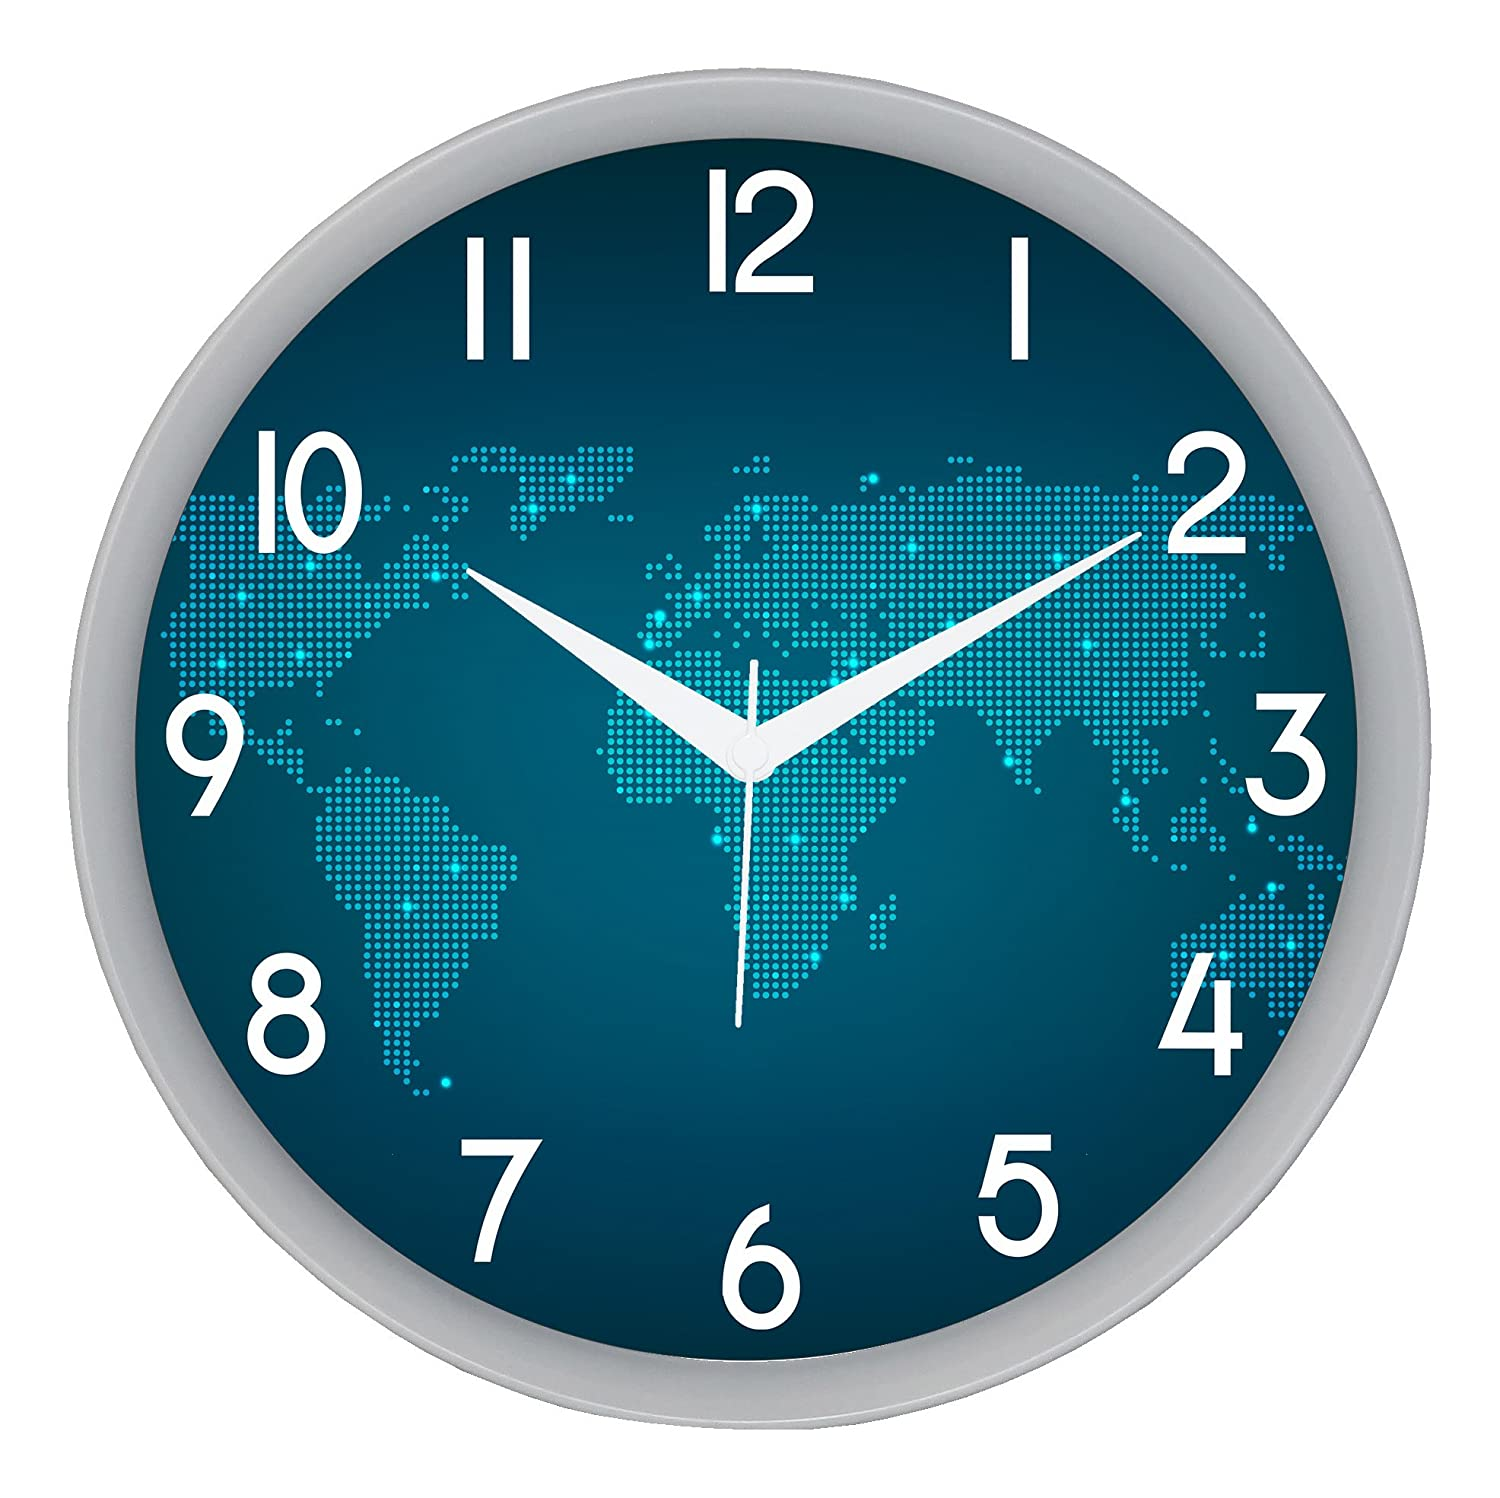 Wall Clock Images Galleries With A Bite